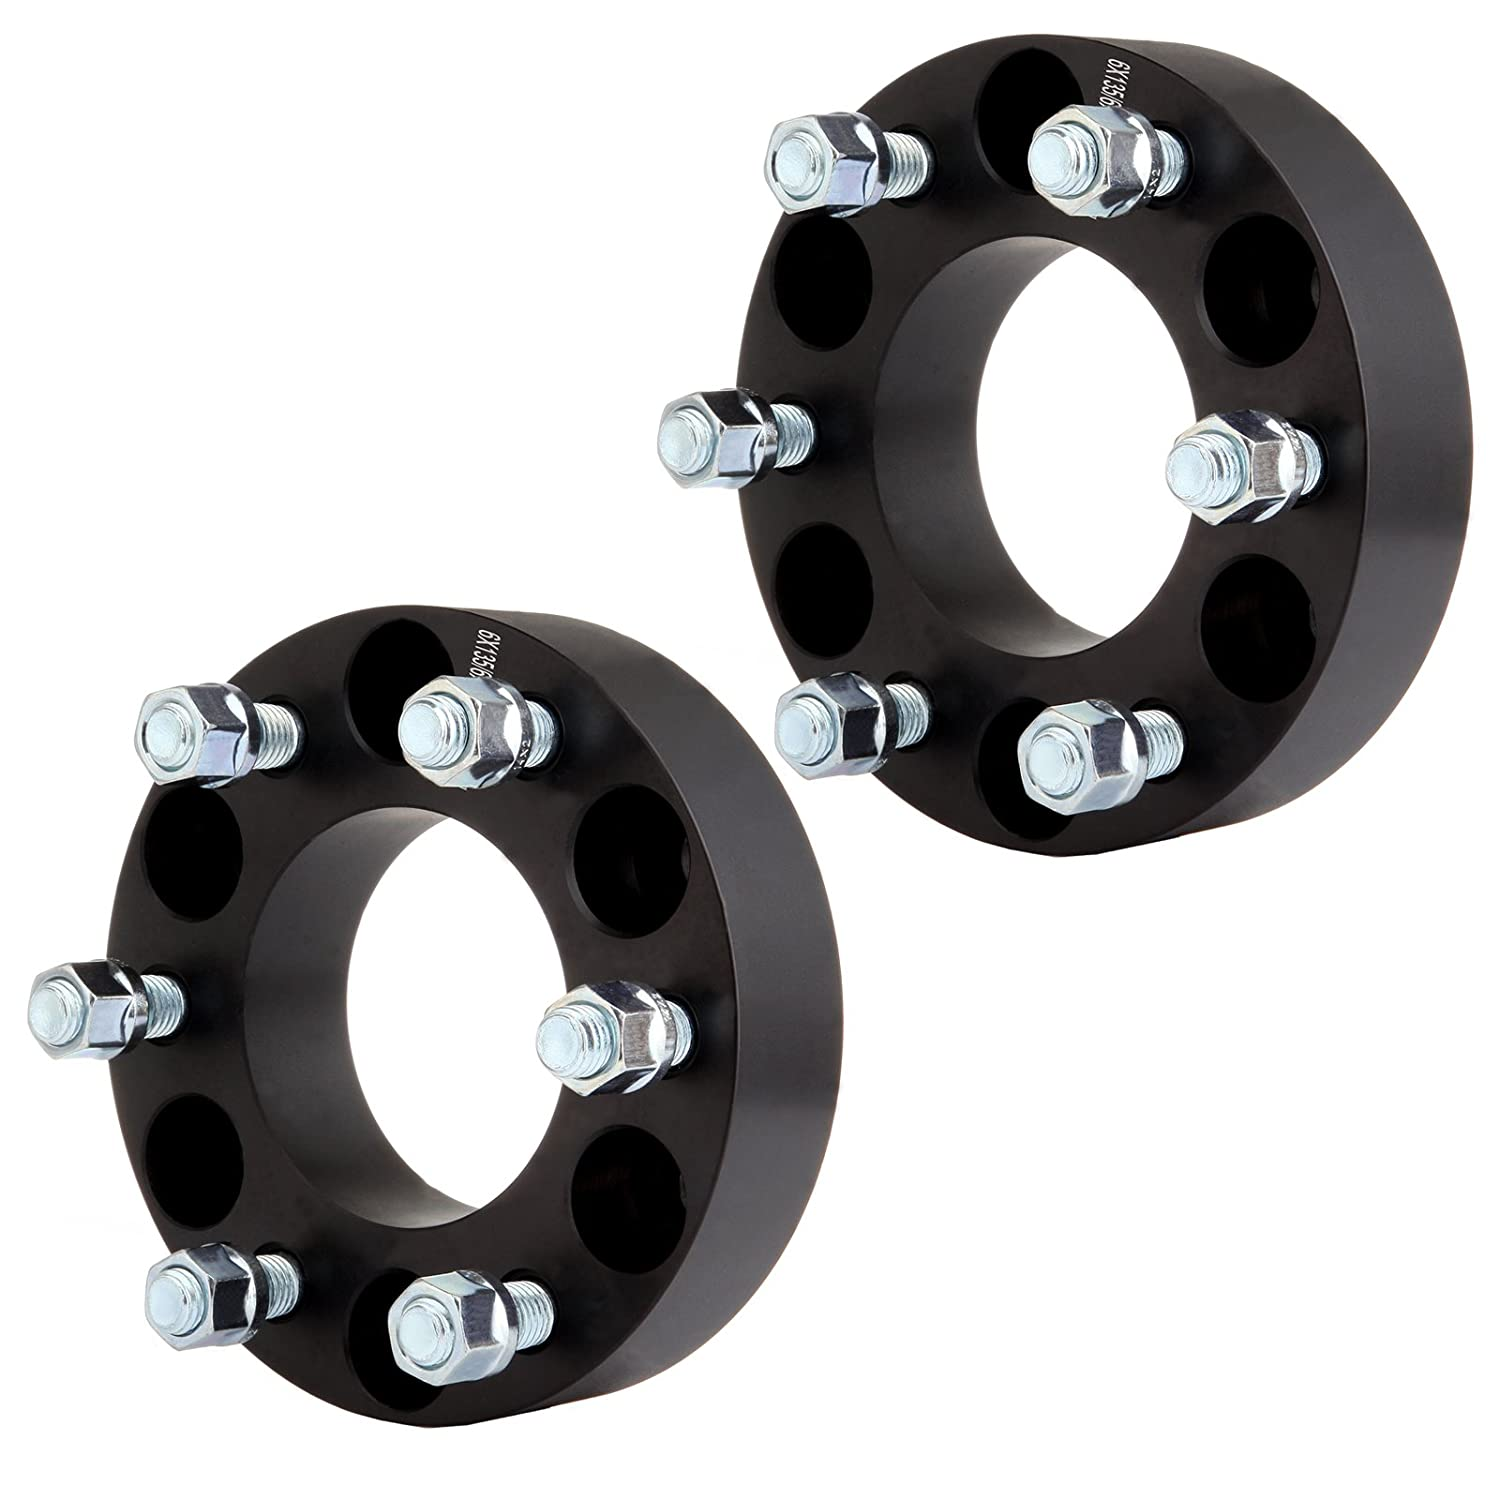 Wheel Spacers for Lincoln, ECCPP Wheel Spacer 6 lug 2X 1.5' 6x135 87.1mm 14x2 Studs for 2003-2014 Ford Expedition 2006-14 Lincoln Mark LT 03-14 Lincoln Navigator with 14x2 Studs 802108-5211-1055321